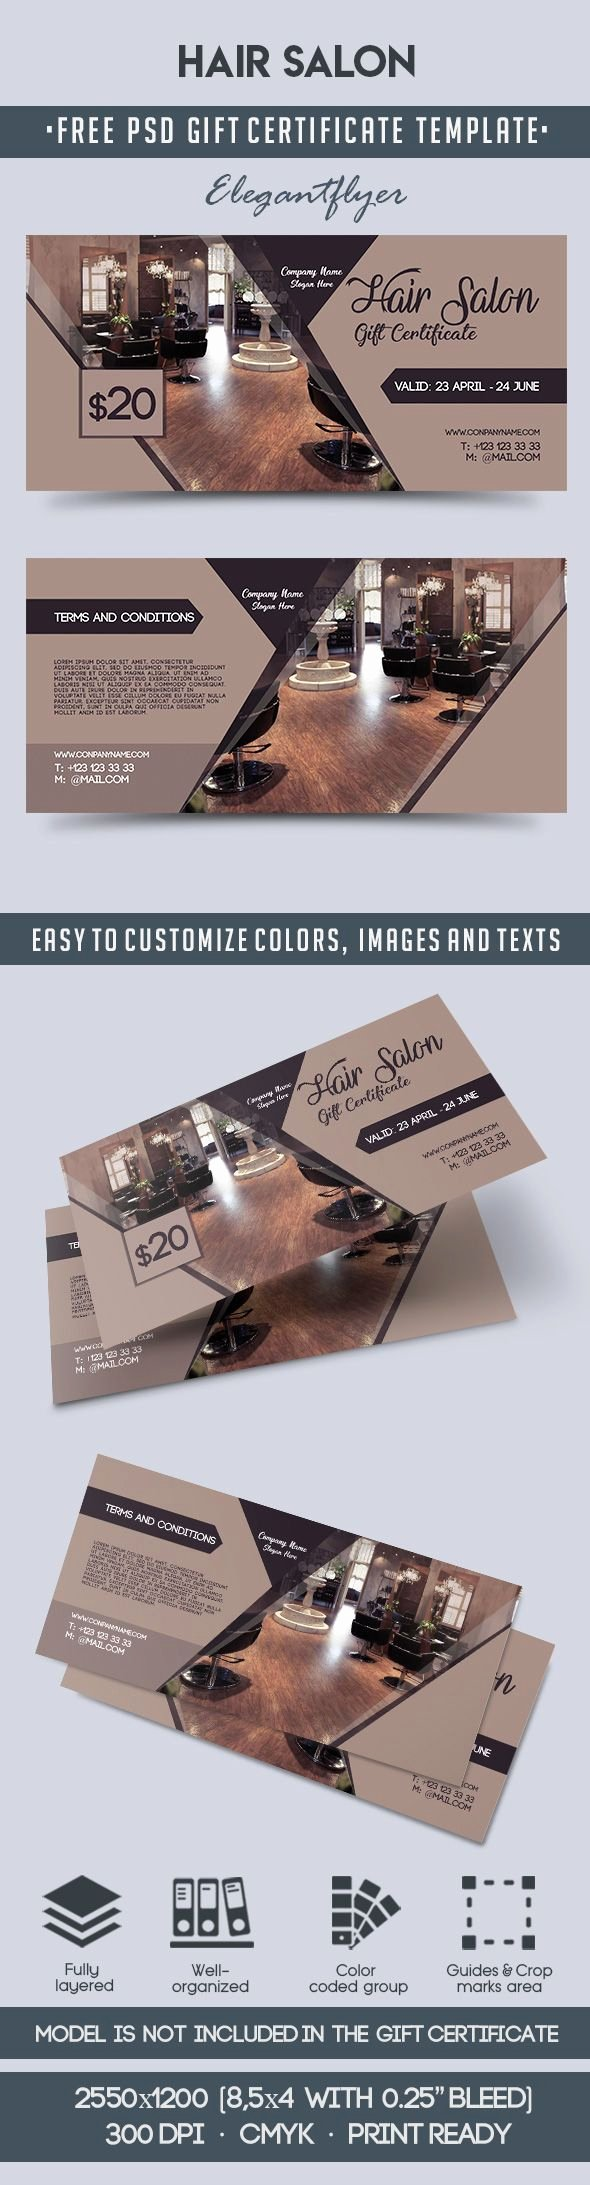 Hair Salon Gift Certificate Template Beautiful Hair Salon – Free Gift Certificate Psd Template – by